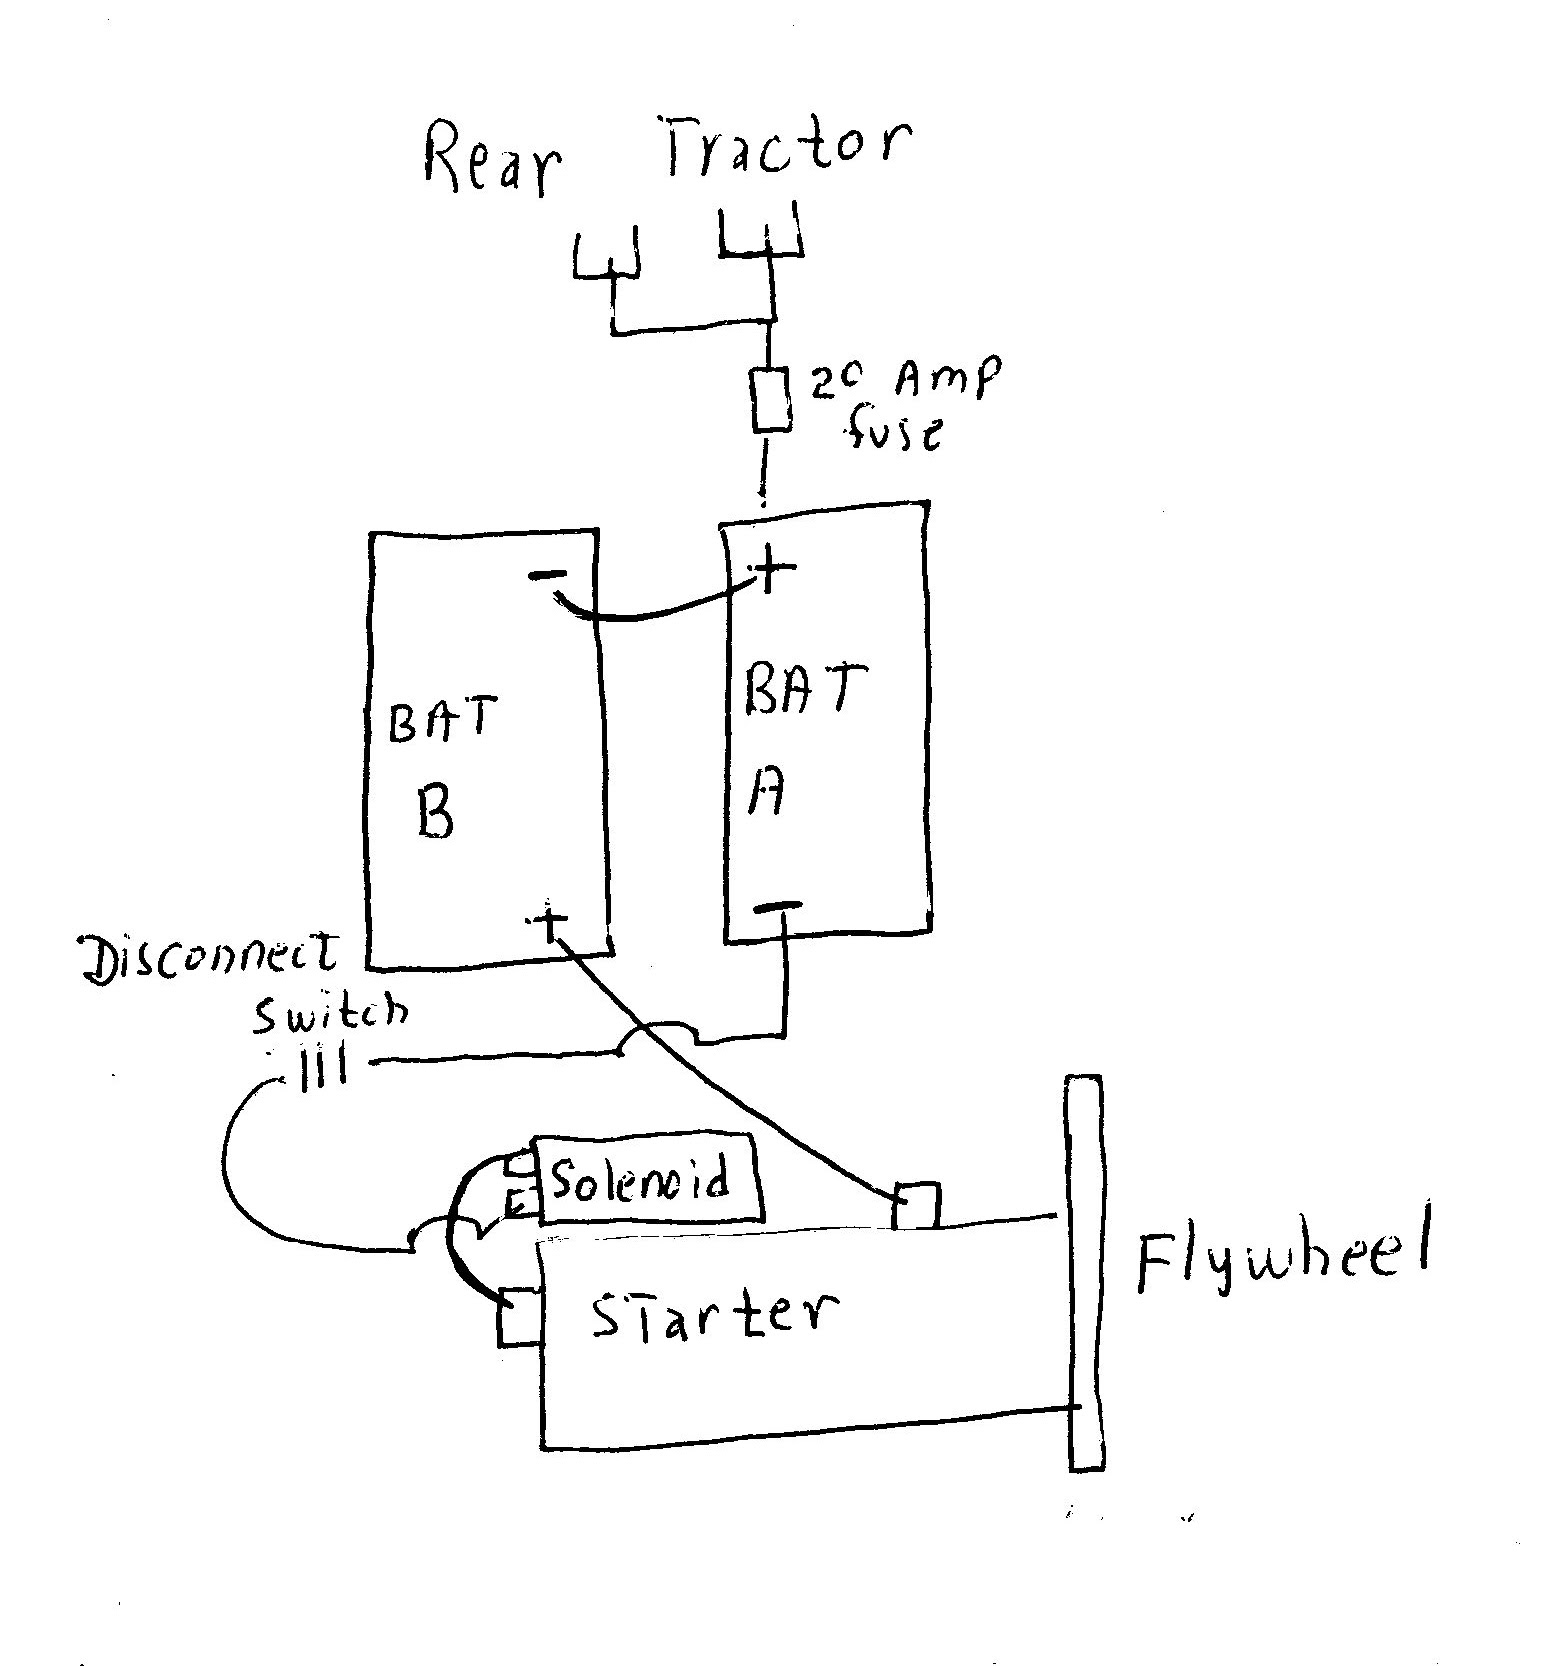 24v Starter Solenoid Wiring Diagram 1956 Ford Wiring Harness Begeboy Wiring Diagram Source